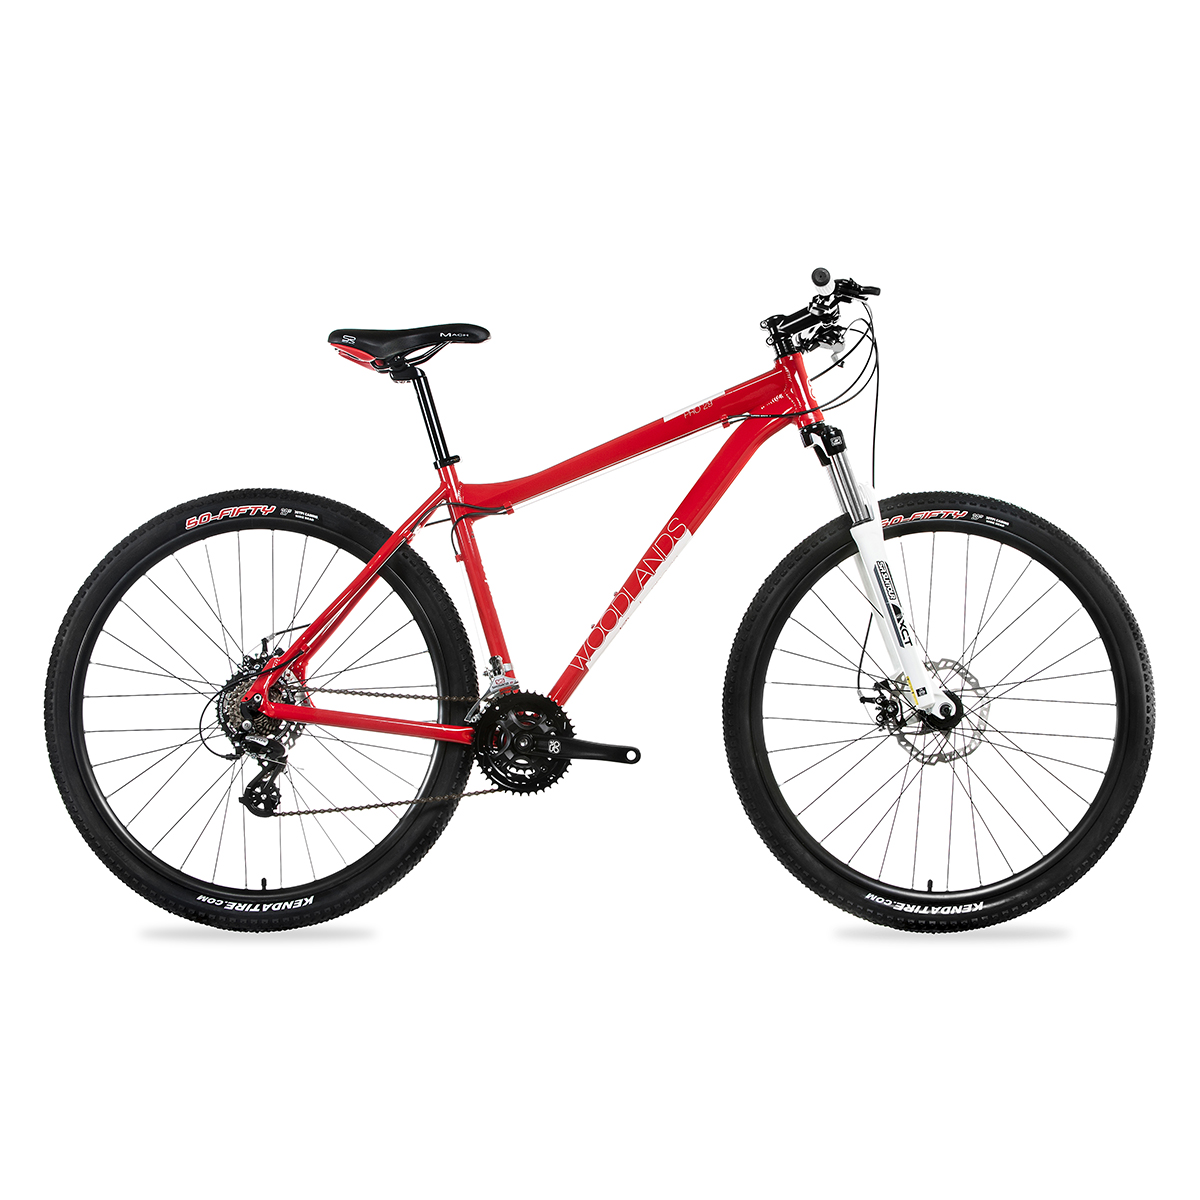 KRP WOODLANDS PRO 29 MTB 1.0 21S SMALL PIROS